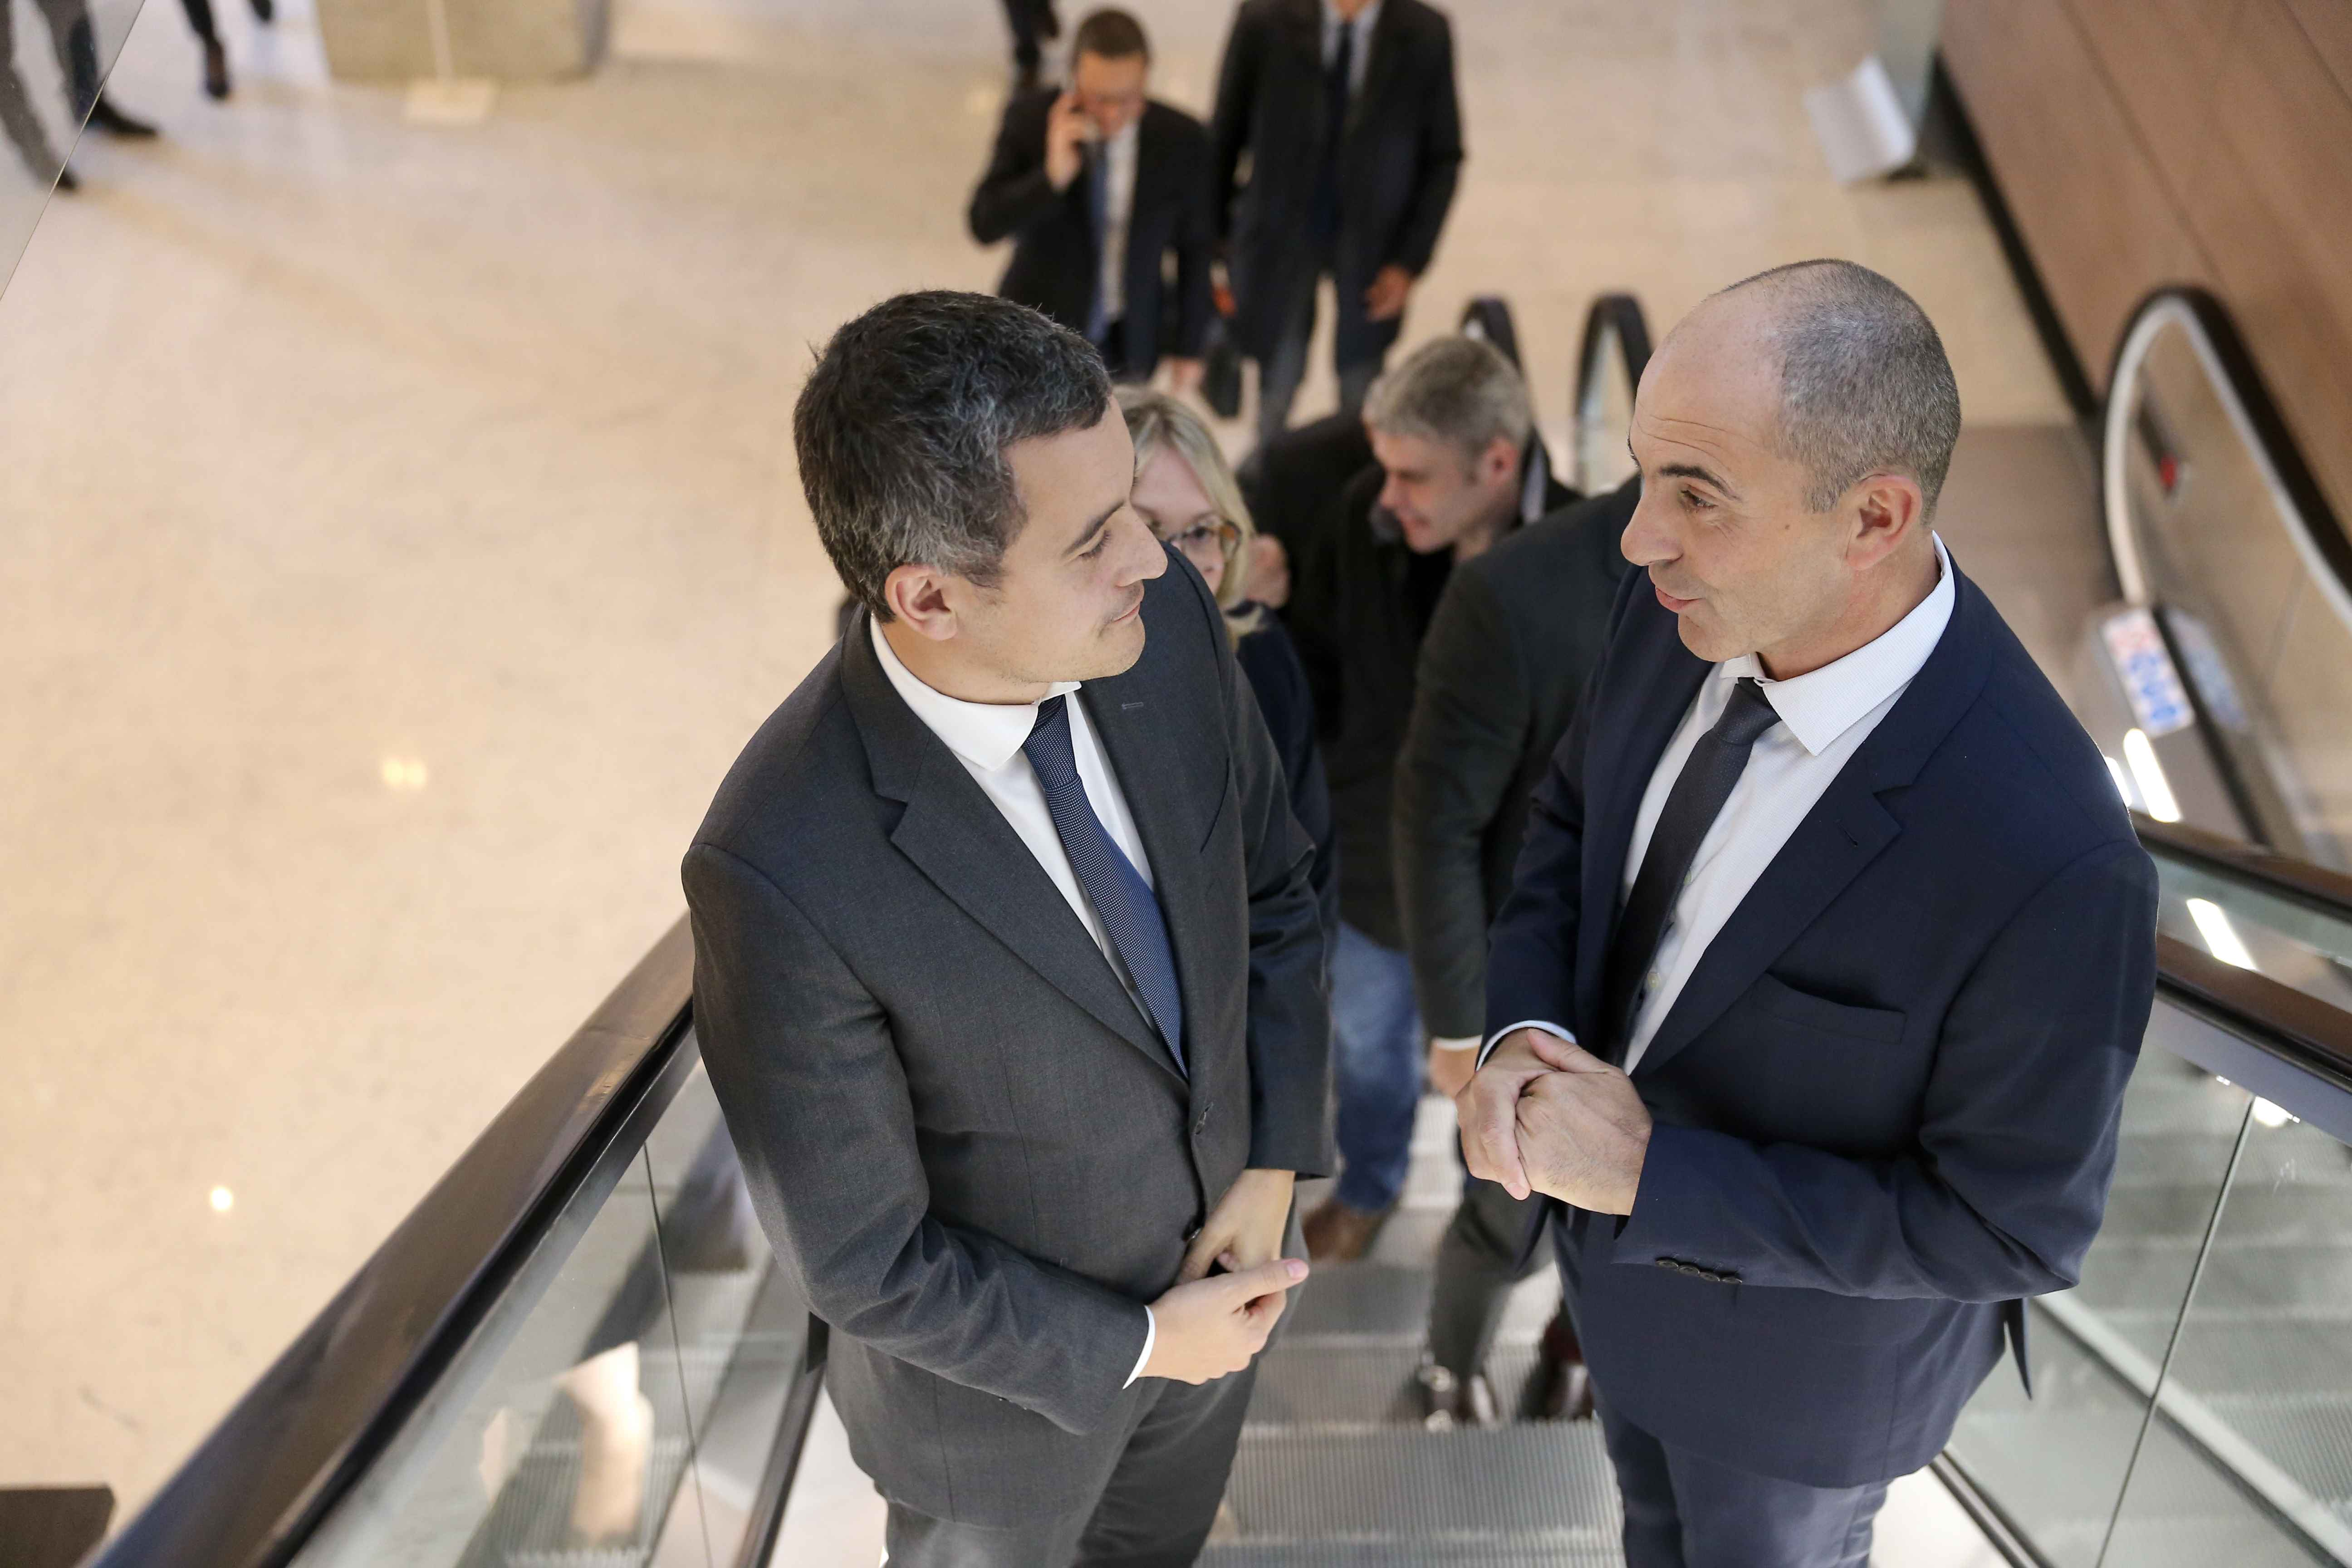 French Minister for Public Action and Accounts Gerald Darmanin (L) is welcomed by Philippe Coy (R), President of the National Tobacconists  Confederation, during the Congress of the Confederation in Paris, on October 10, 2019. In the last few years, the in